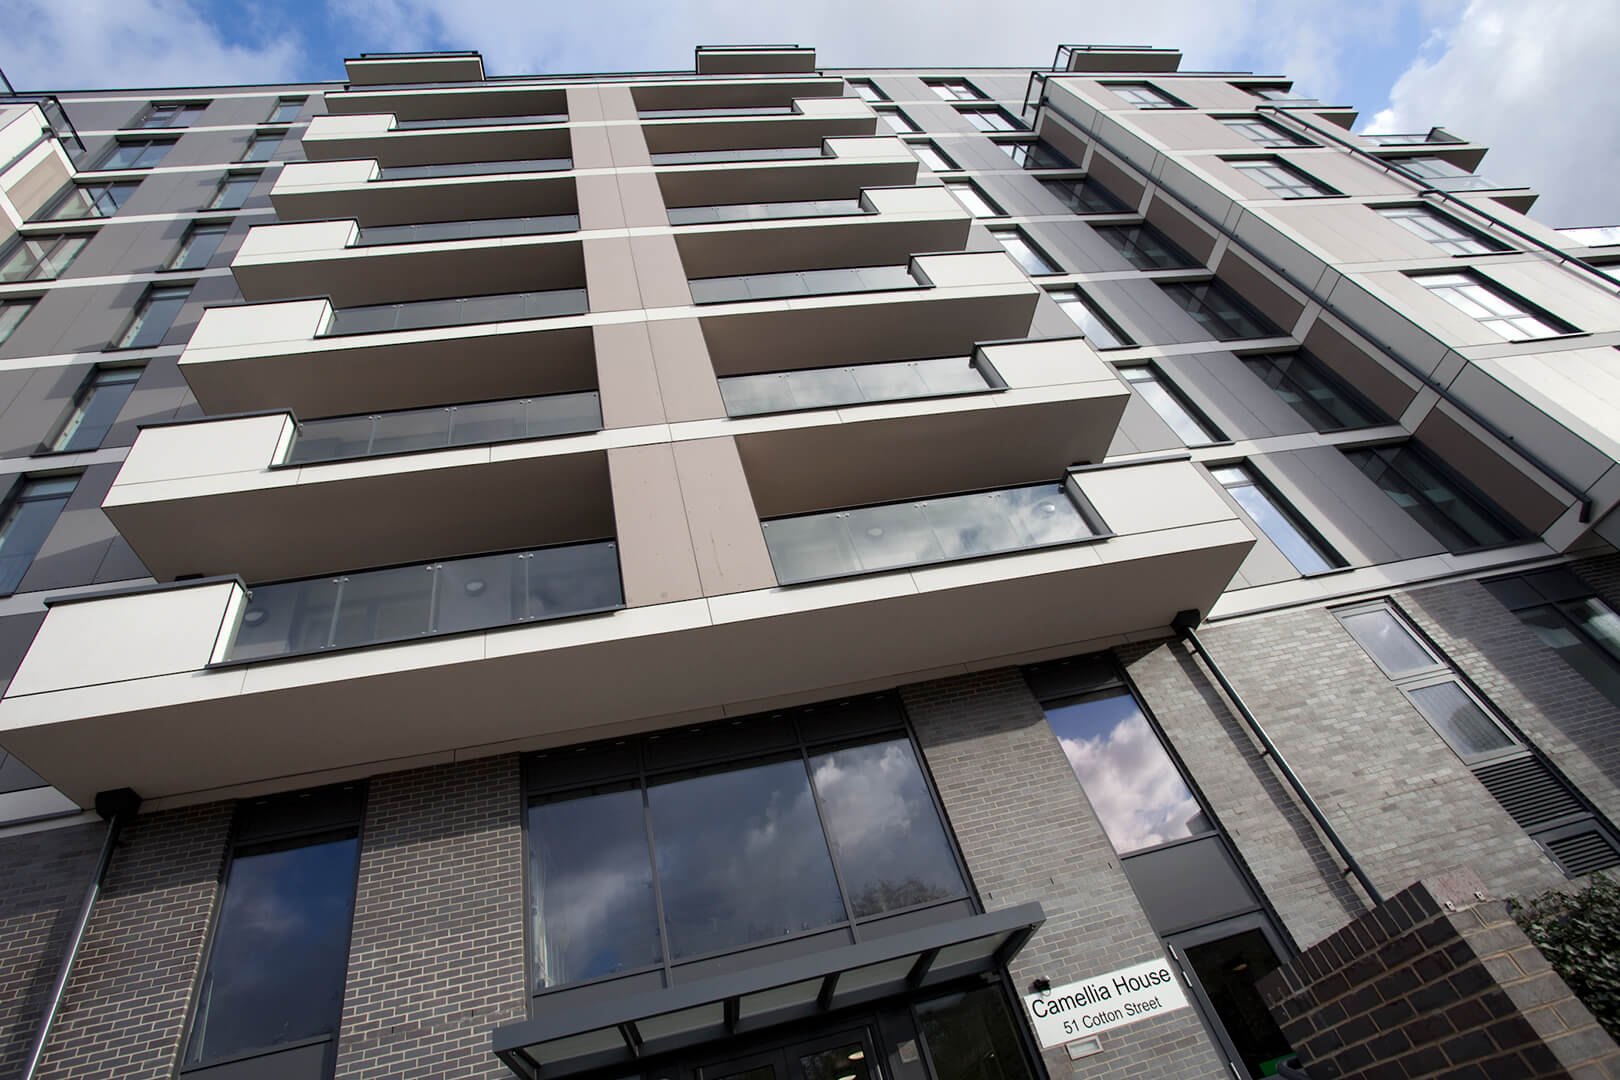 Types Of Cladding Materials : Rainscreen cladding galleries gallery types of